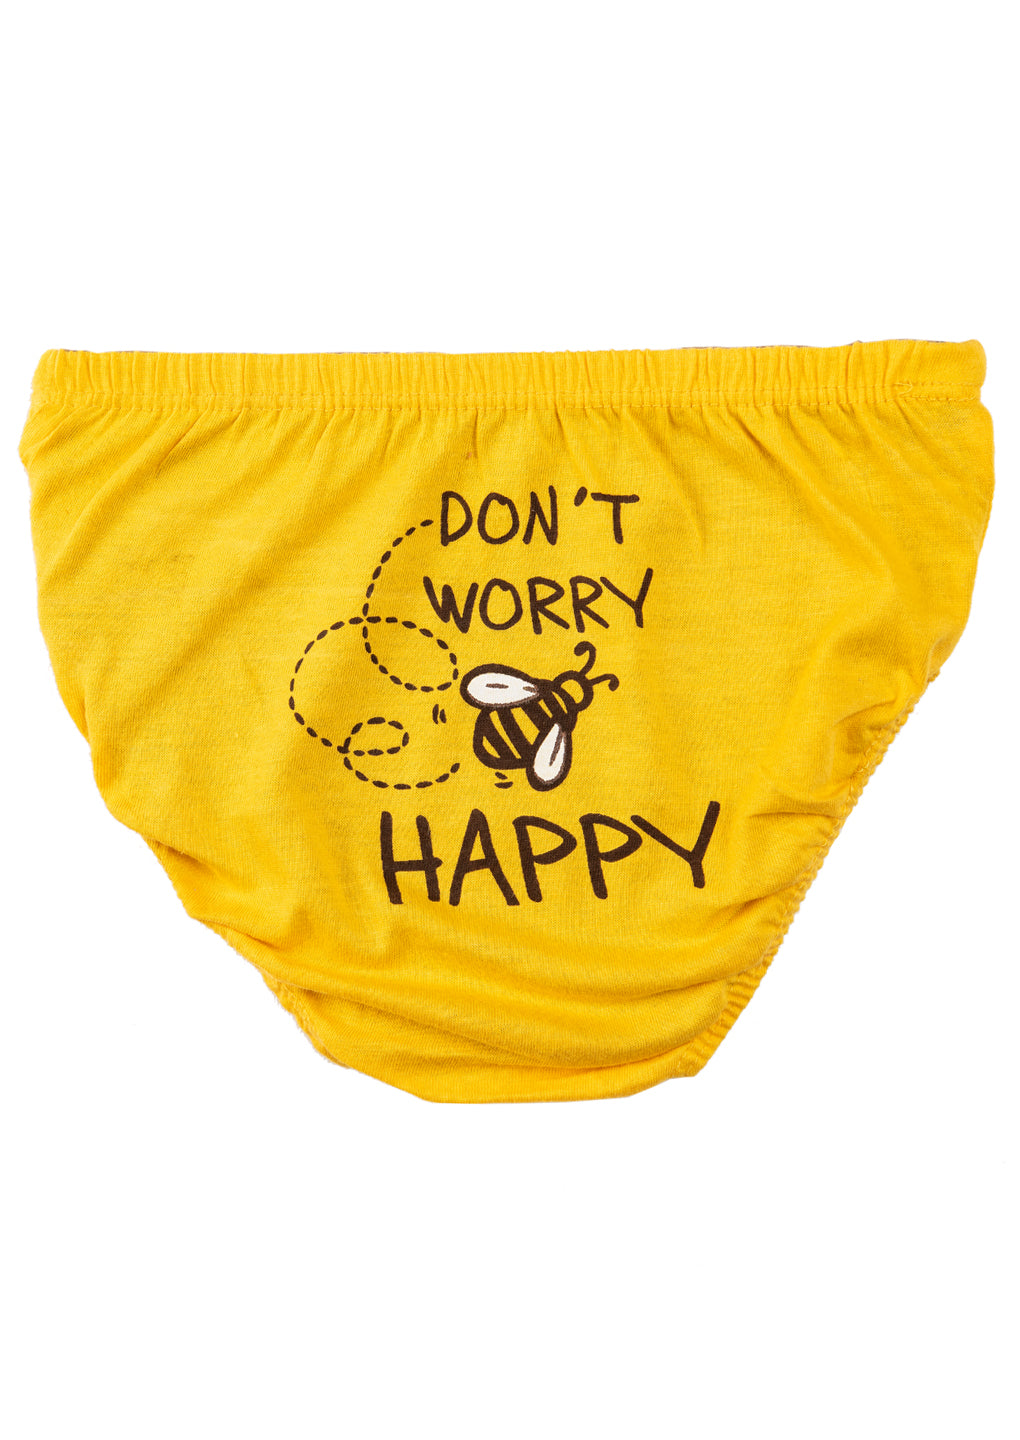 Shop Online - Creepy Crawly Boy Underwear